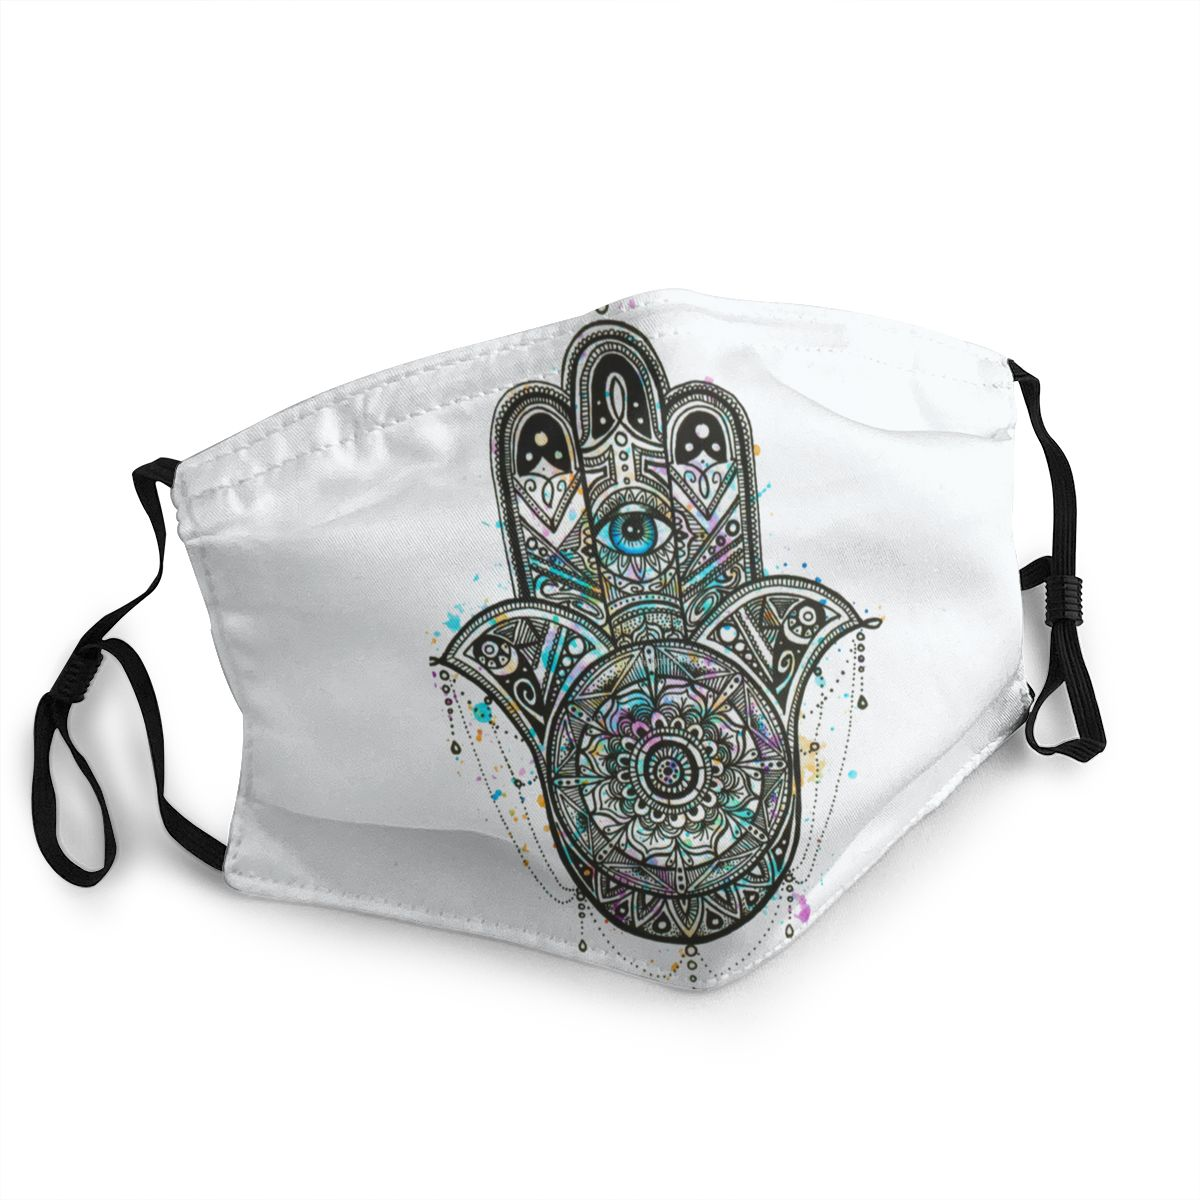 Hand Of Fatima Psychedelic Unisex Reusable Face Mask Anti Haze Dust Mask Protection Mask Respirator Mouth Muffle